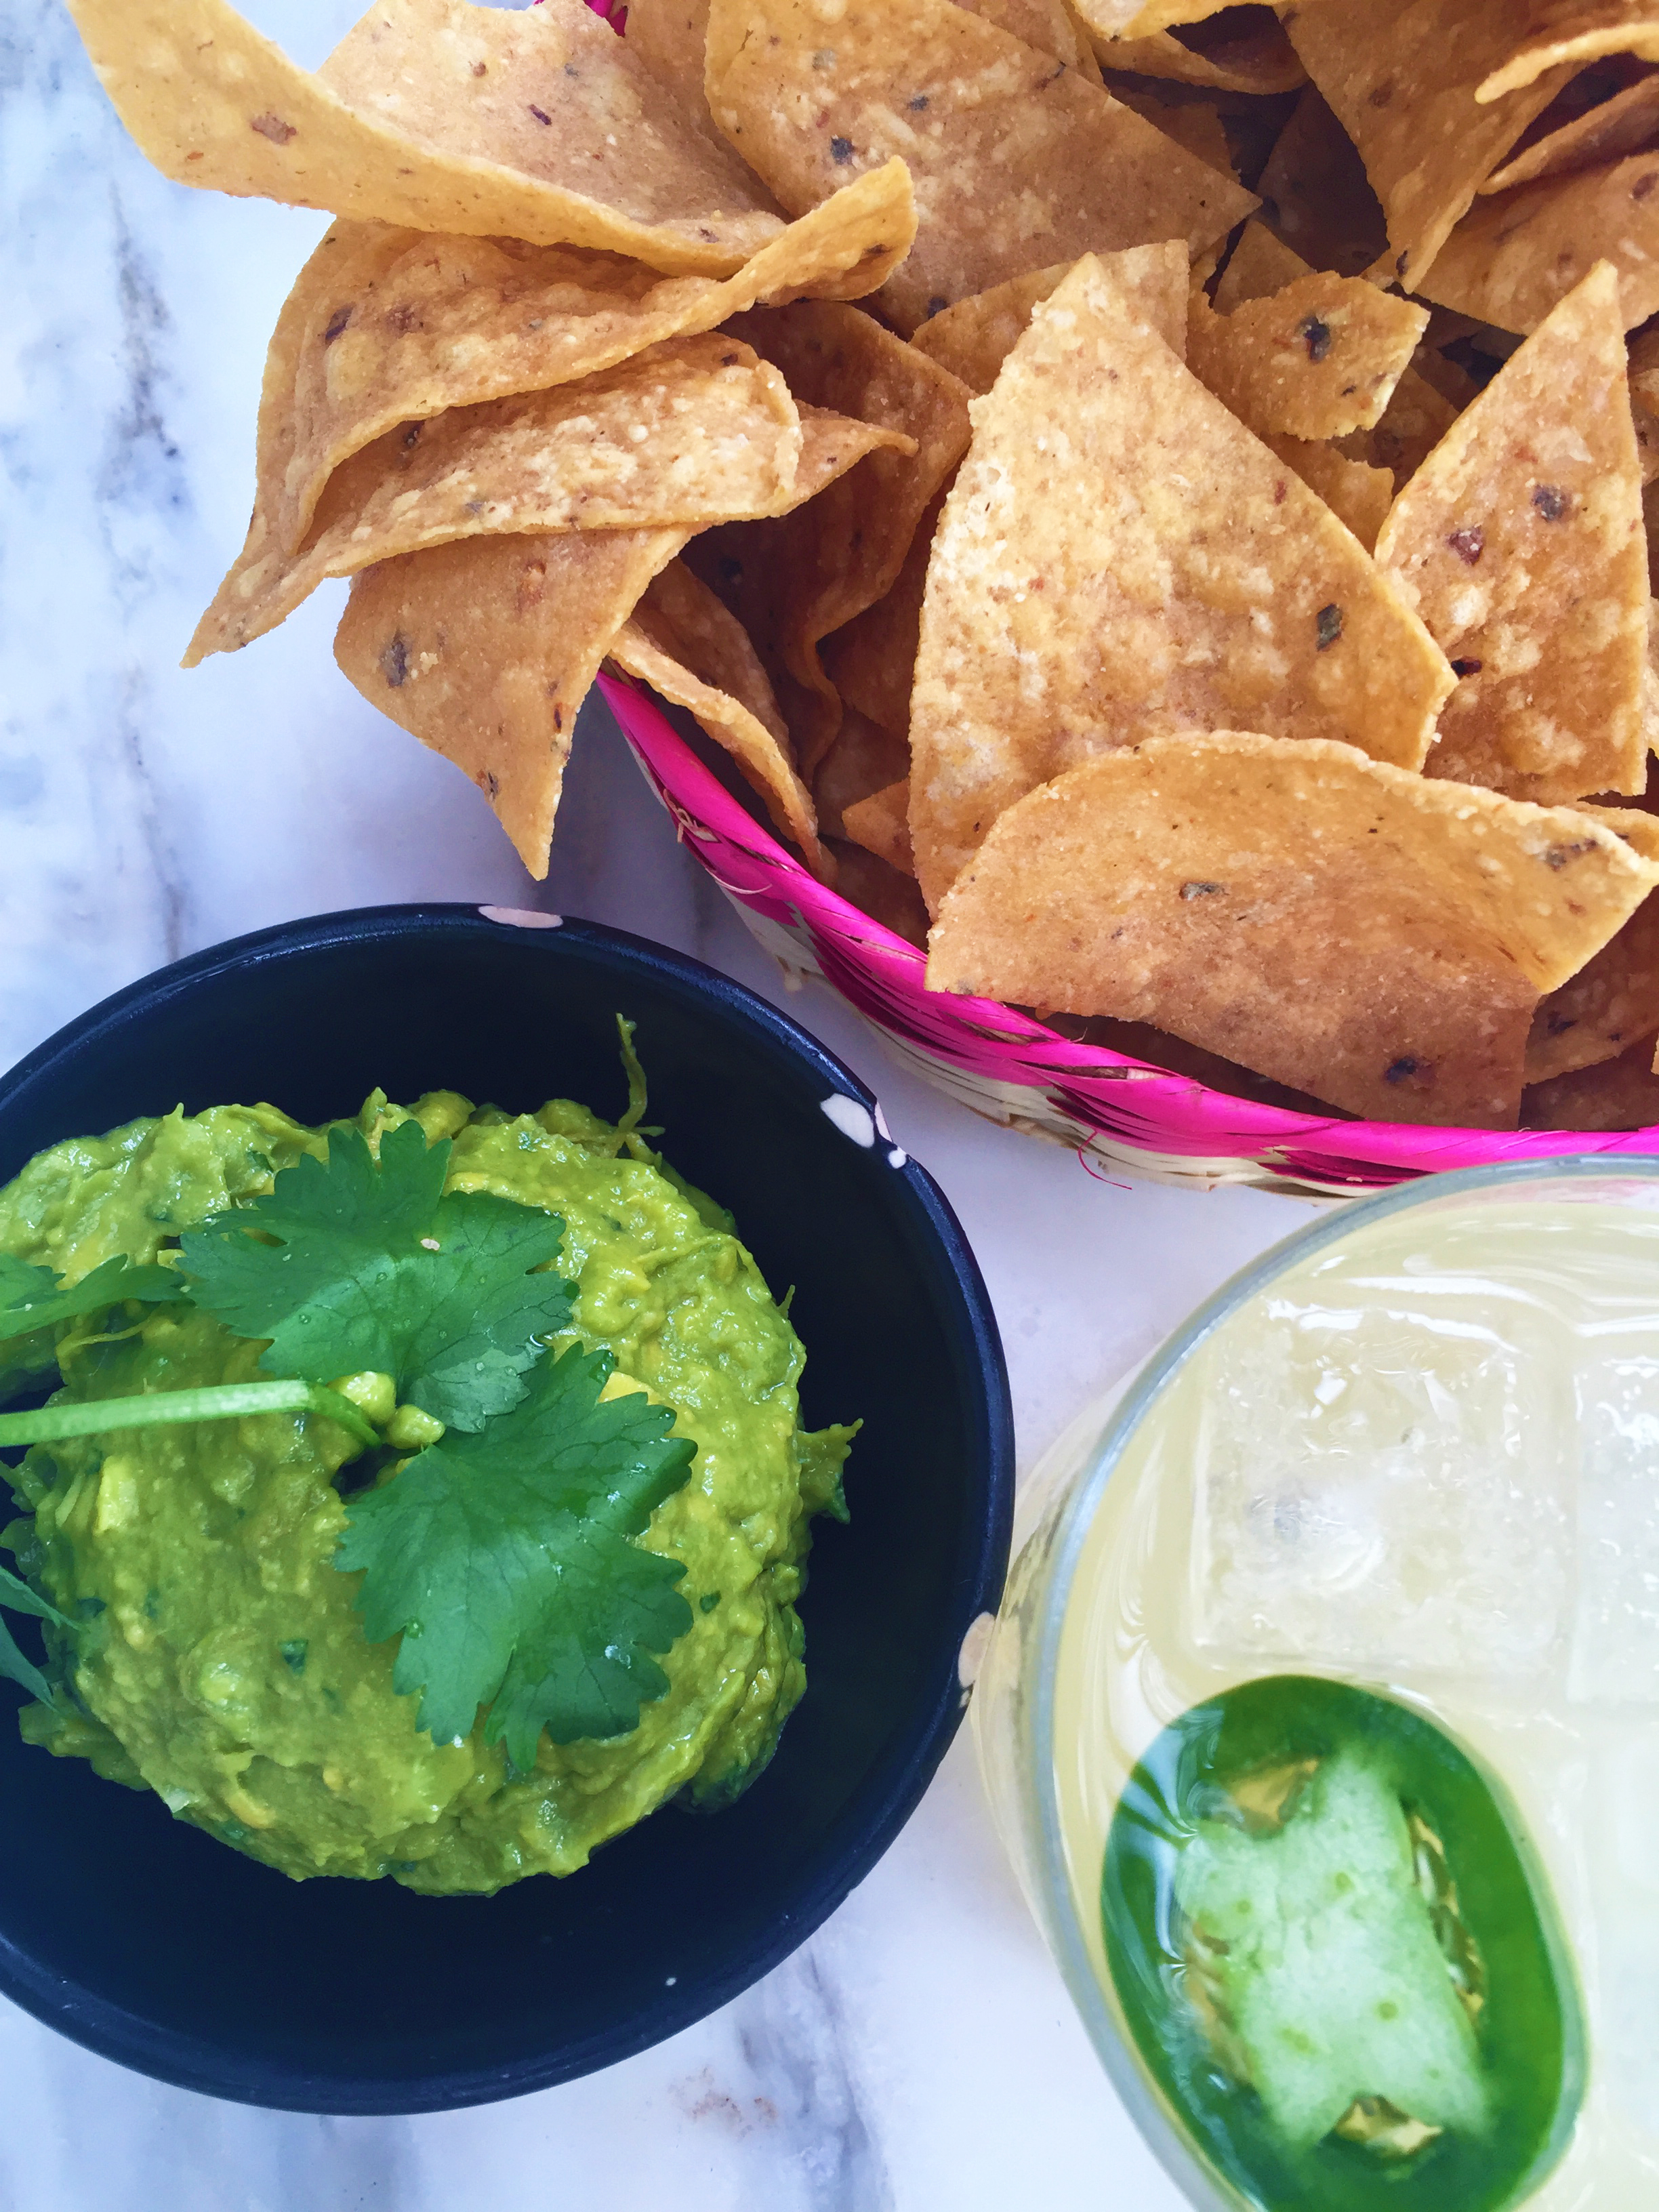 GUACAMOLE CON TORTILLAS - mashed avocado - cilantro - onion - chile - lime - housemade chips